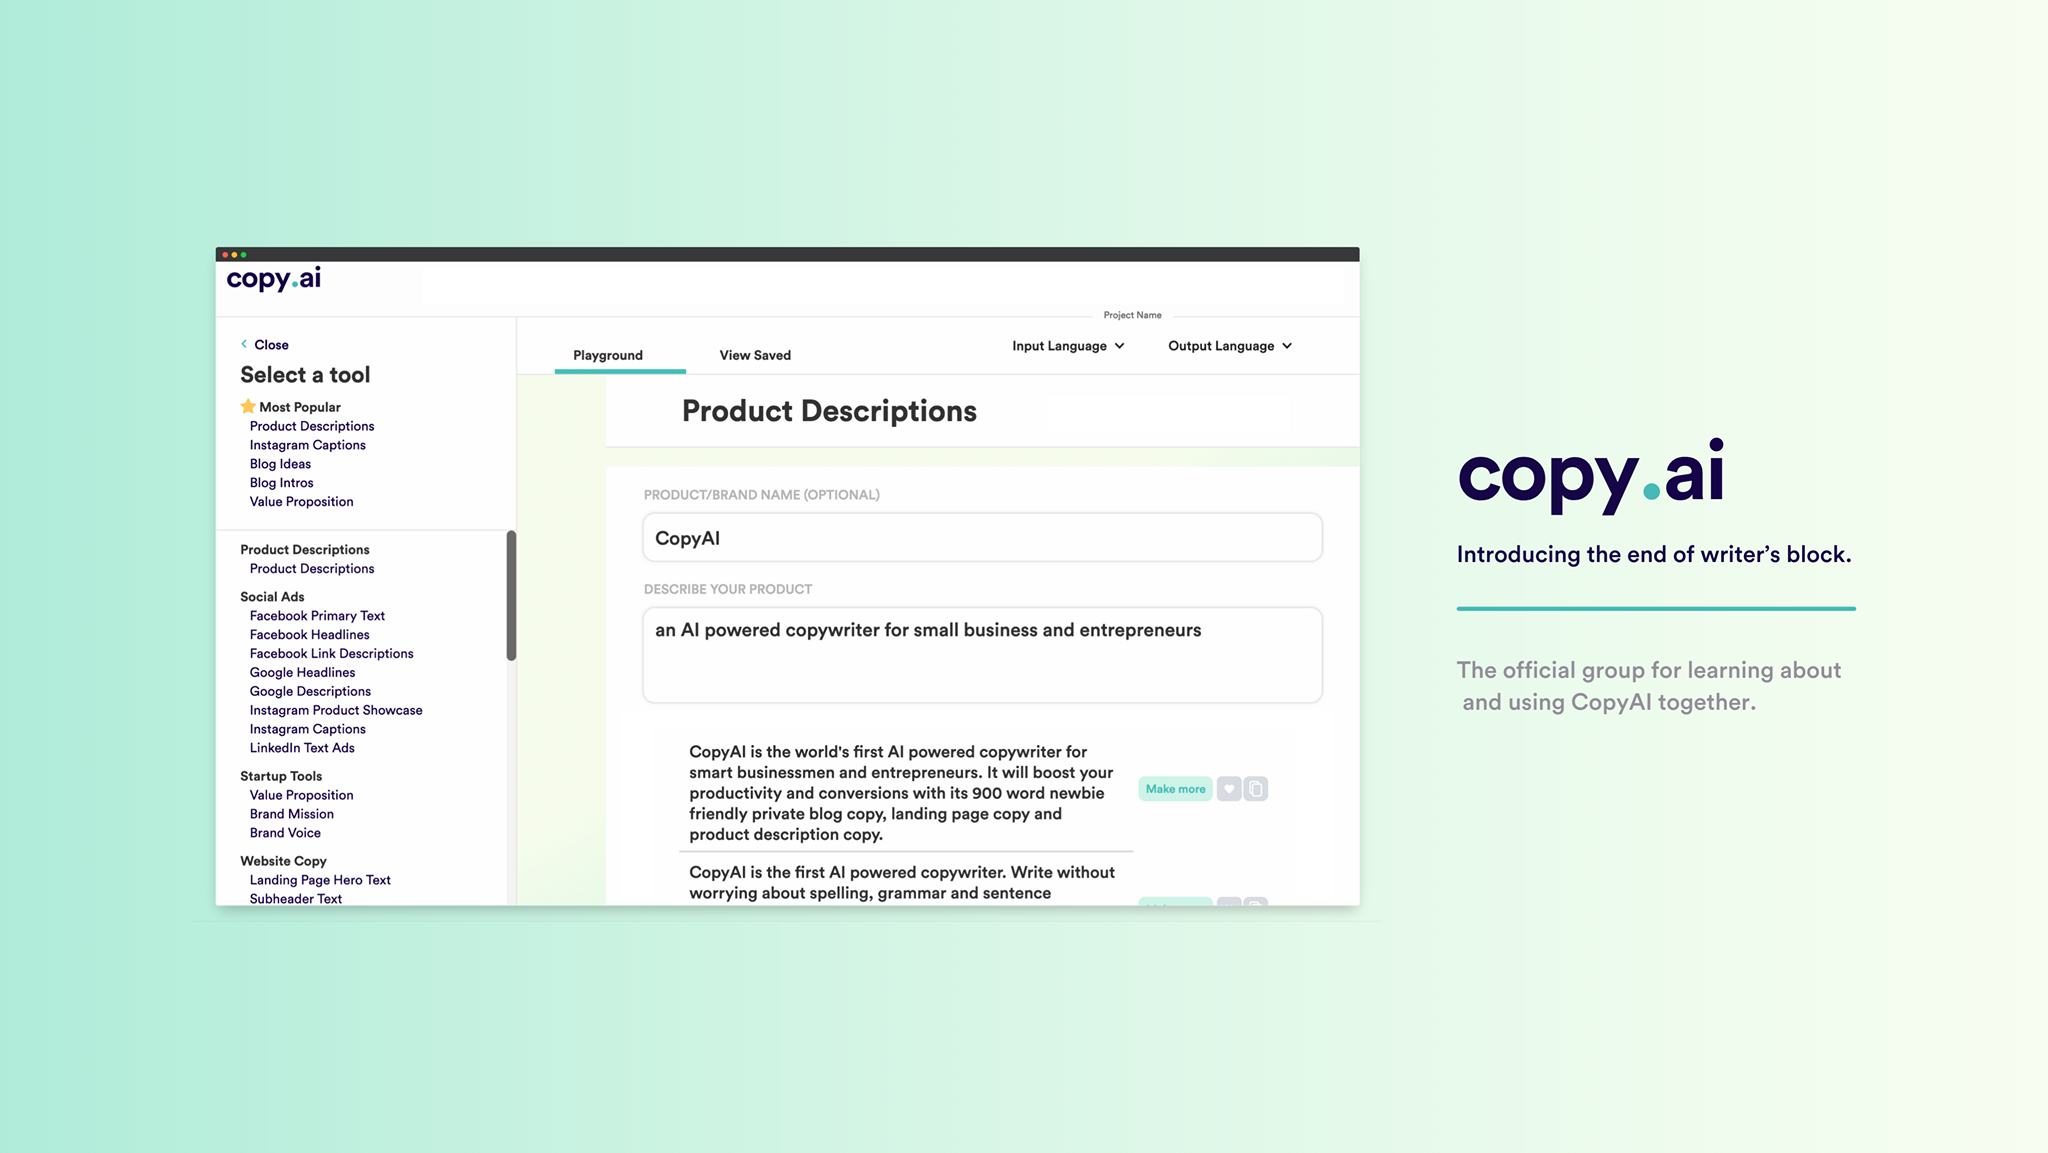 Open the CopyAI app to get started with product descriptions